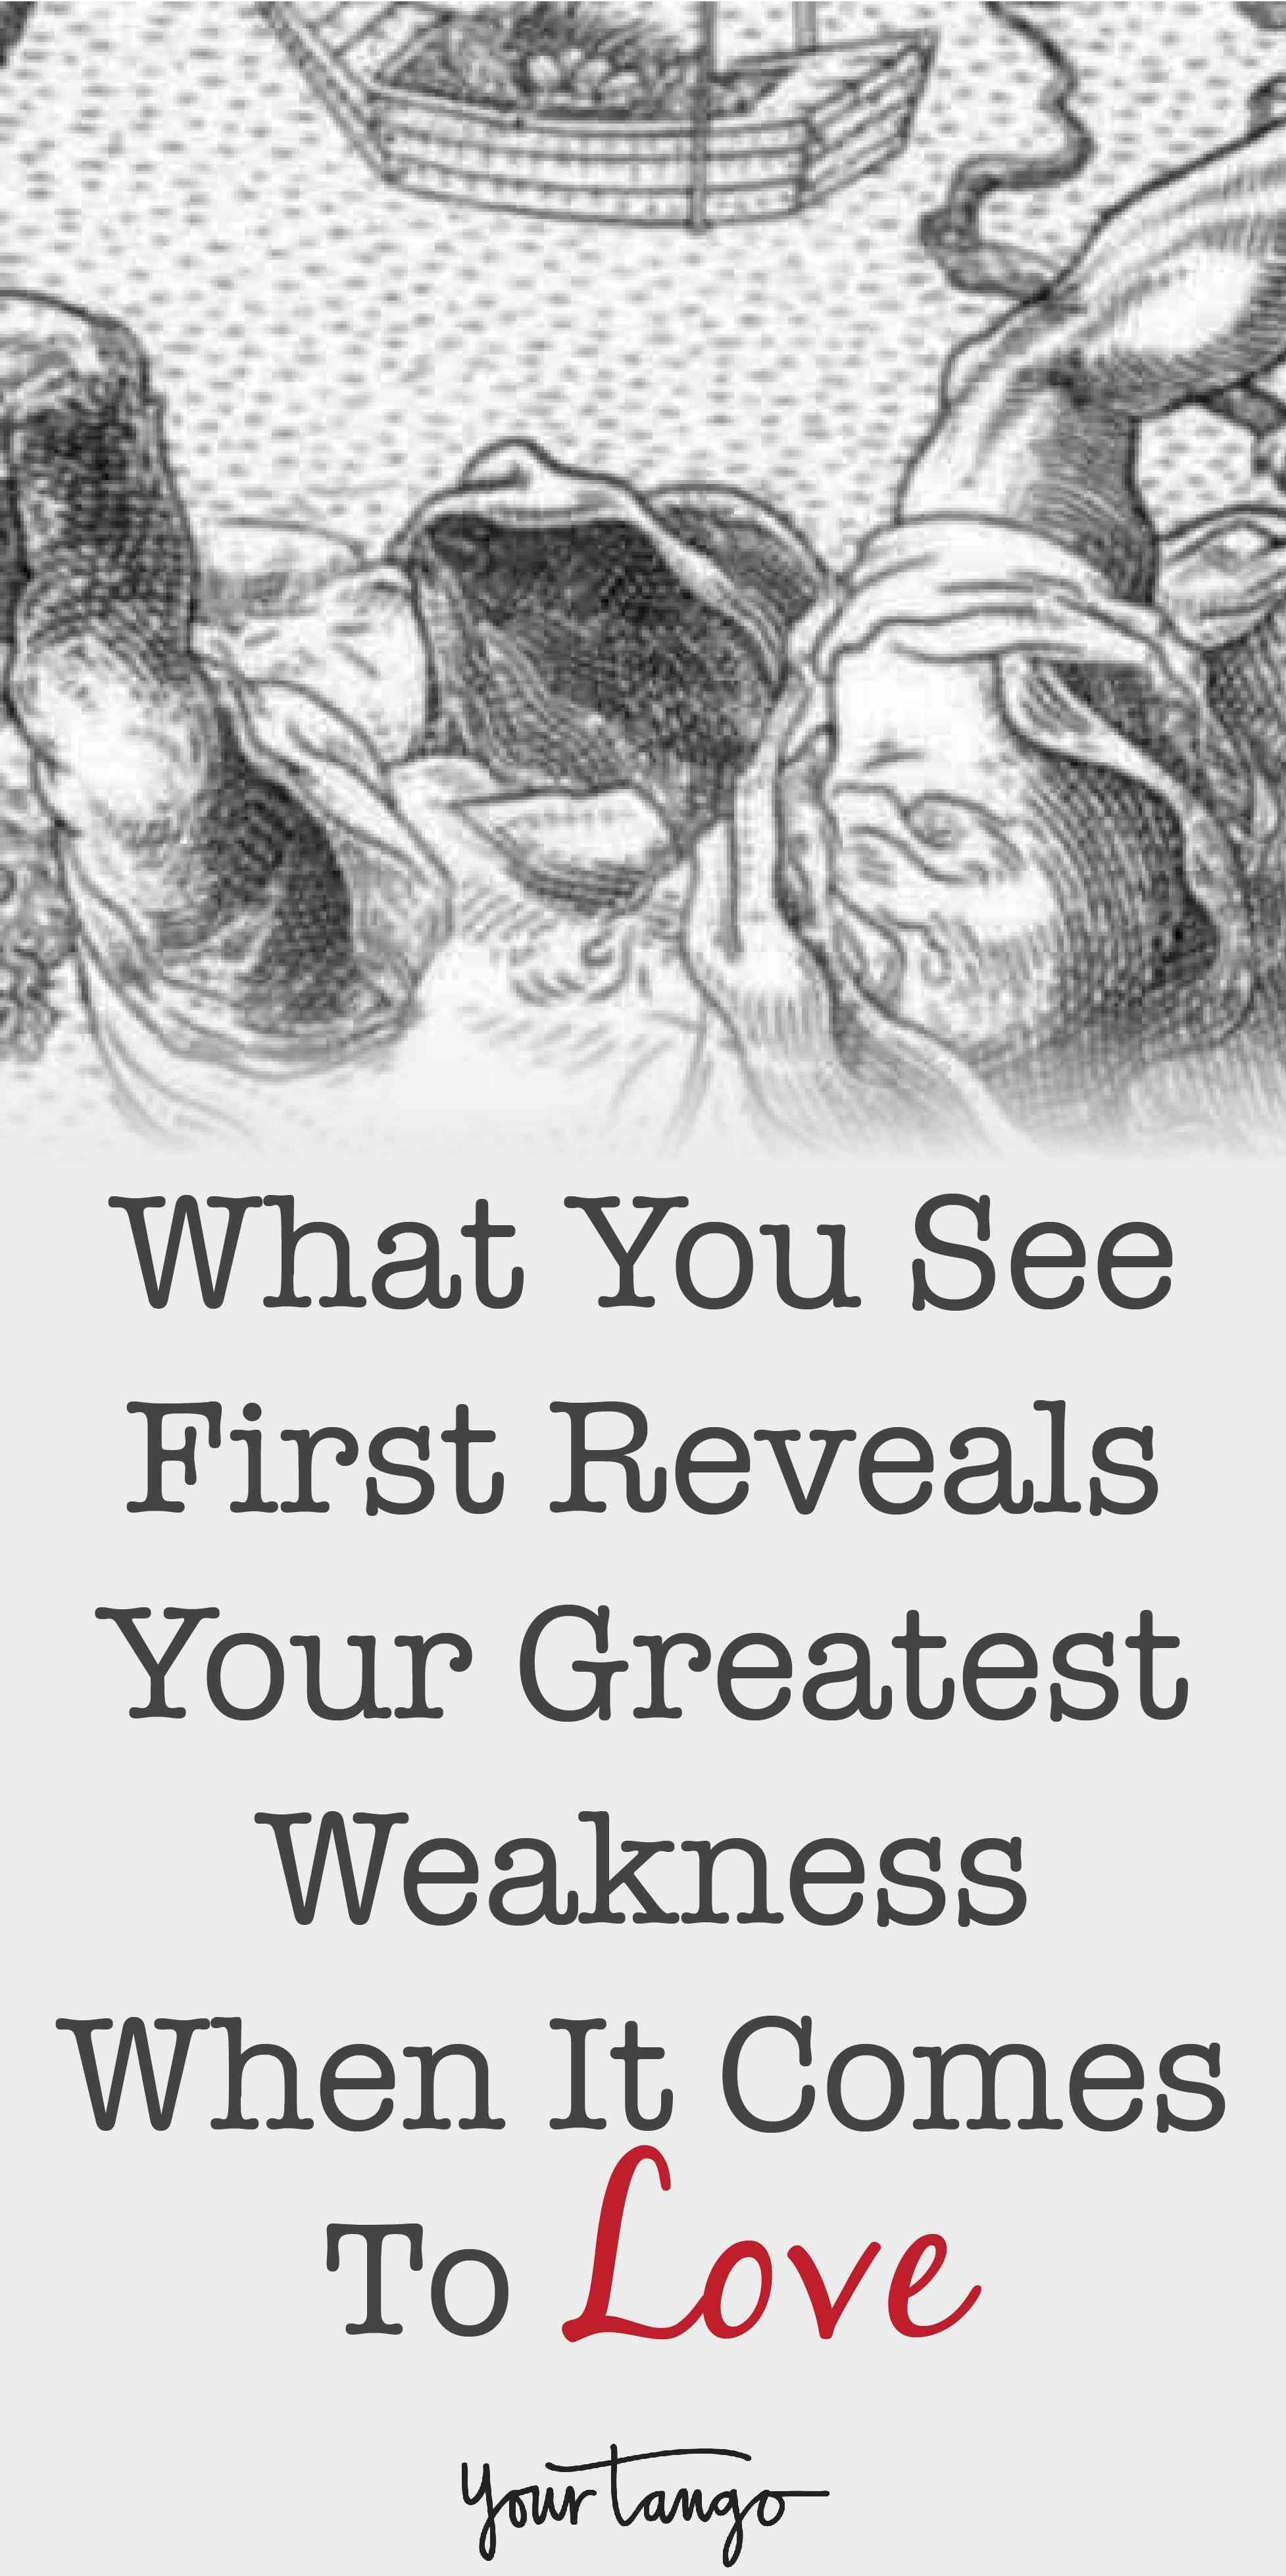 What You See First Reveals Your Greatest Weakness When It